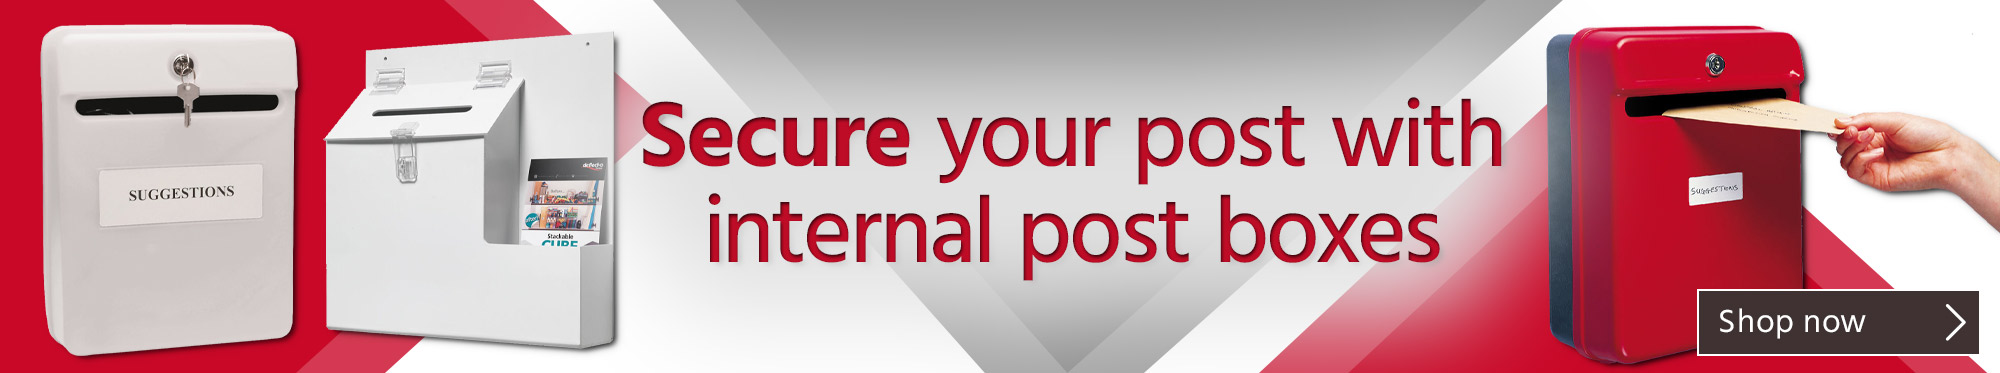 Secure Your Post with Internal Post Boxes